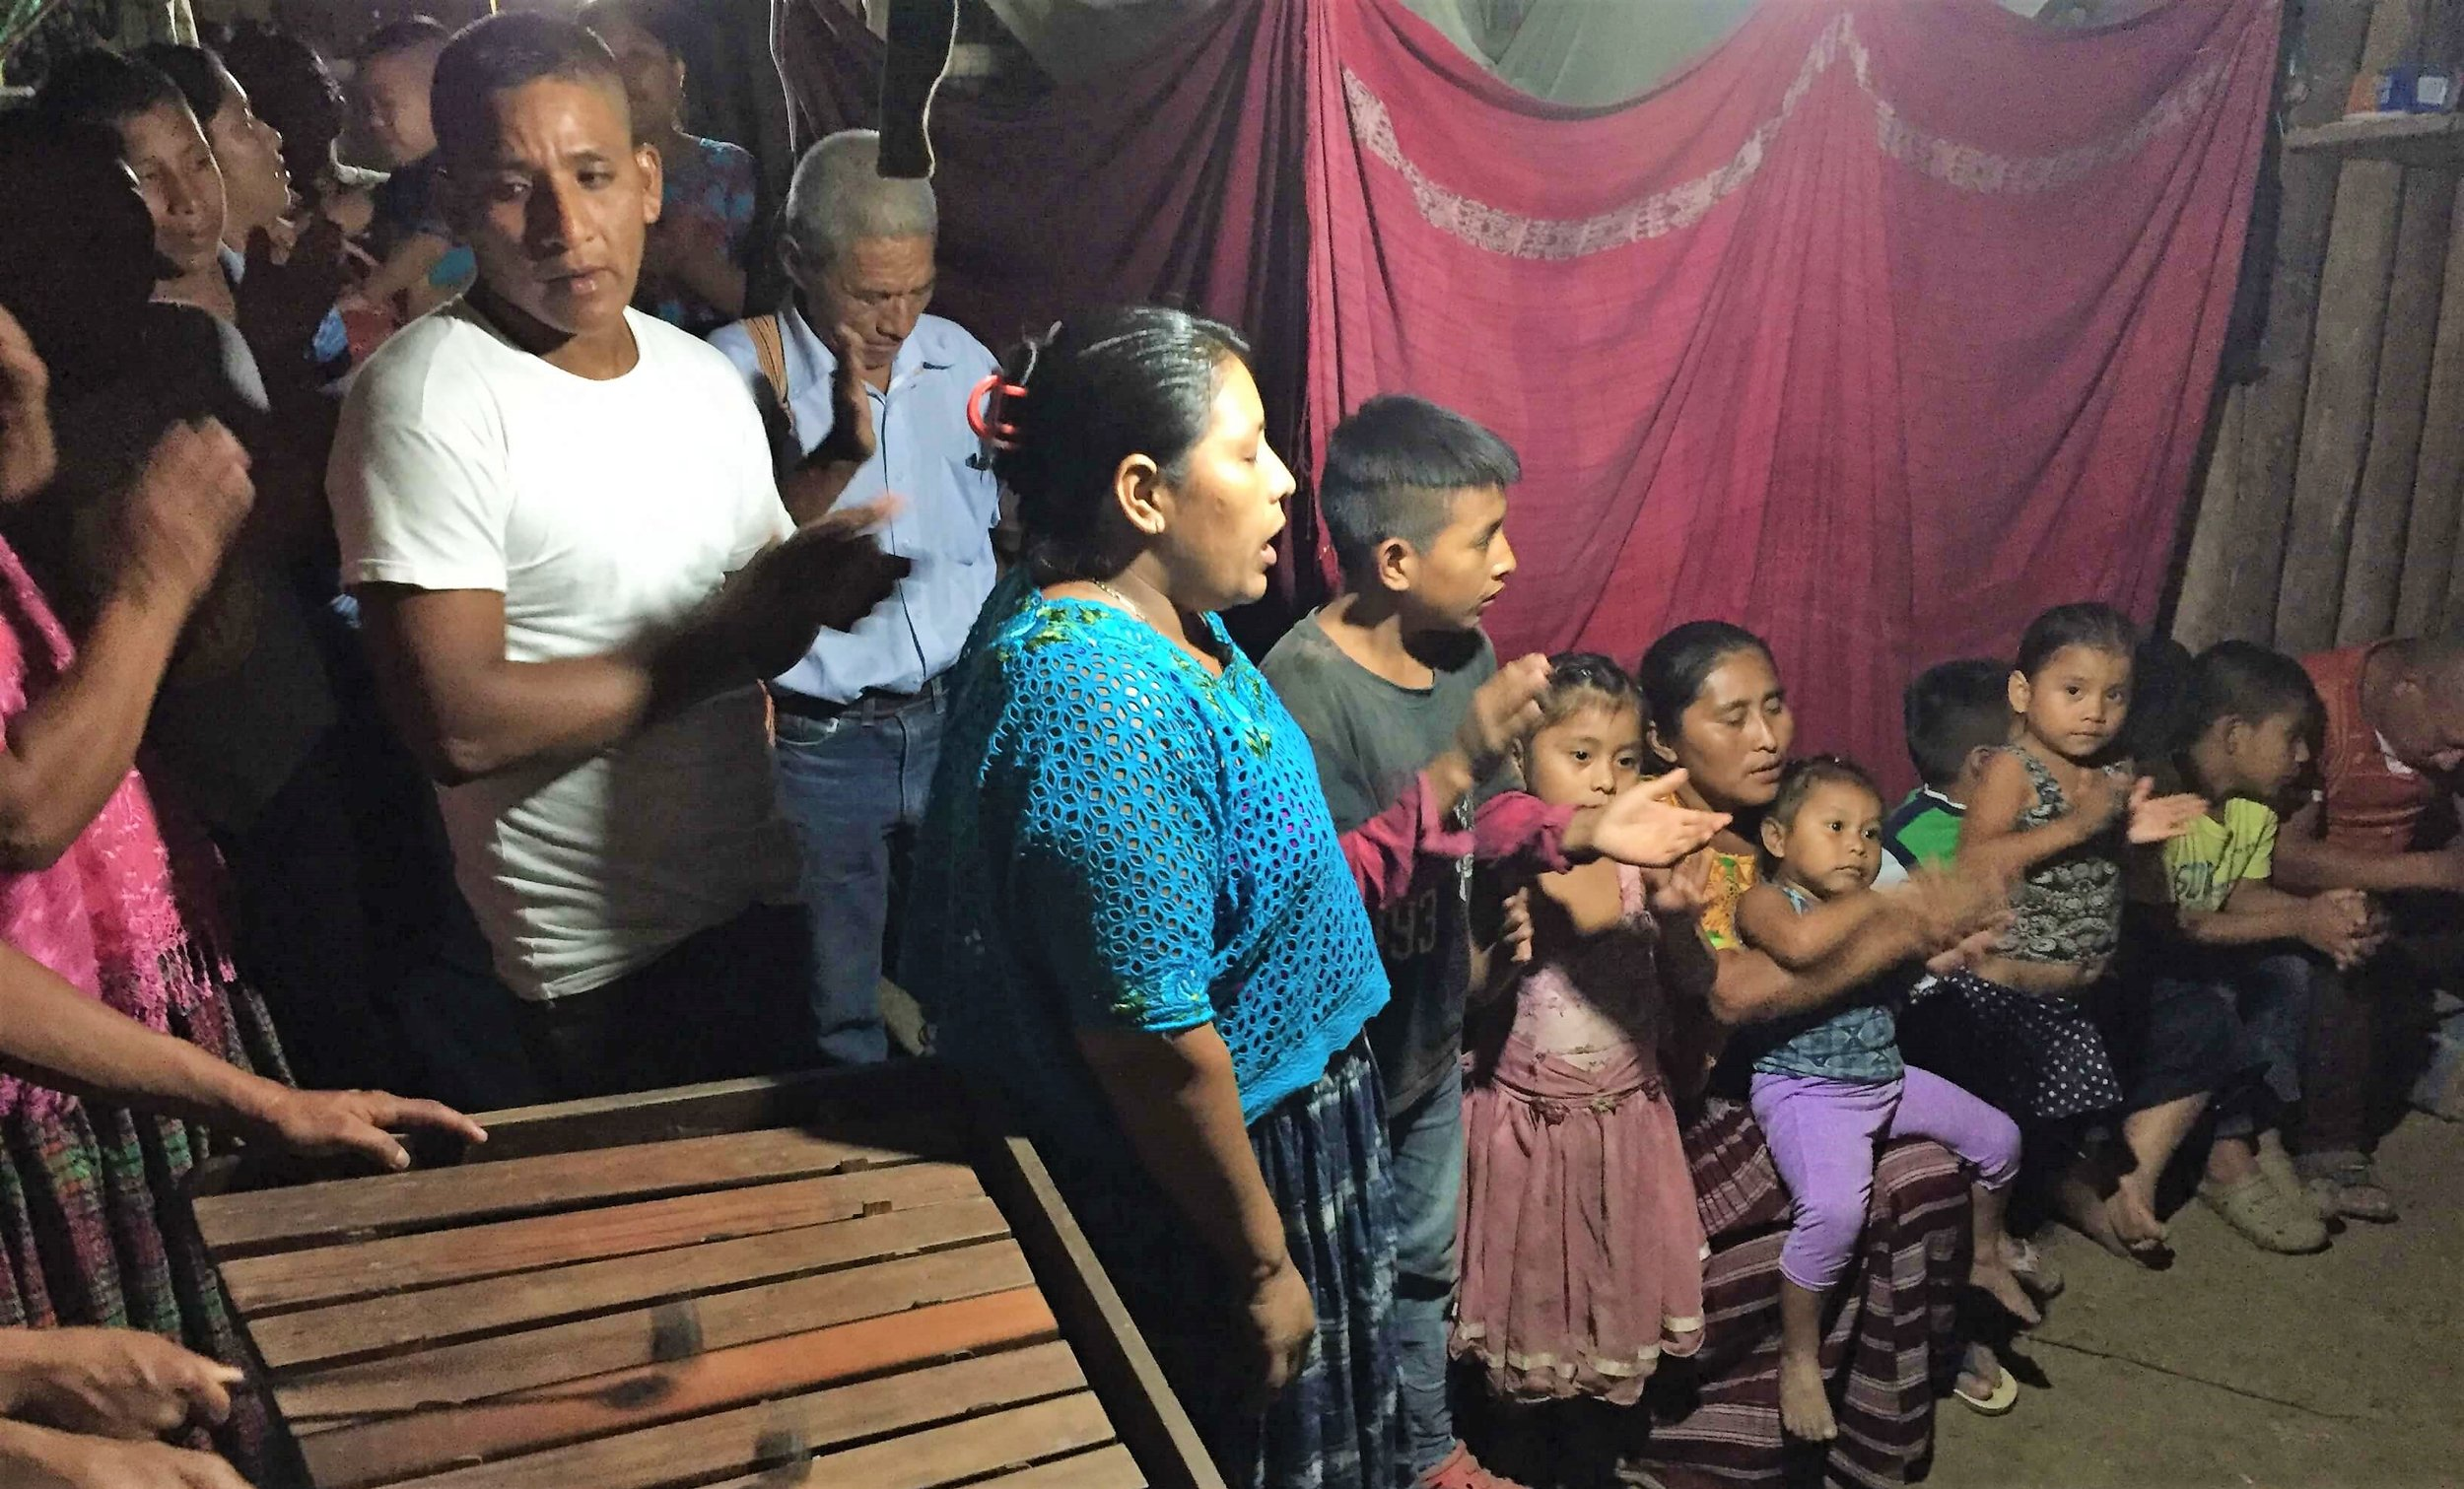 Aníbal (white shirt), pastor in Sejux, and his new congregation sing praises.